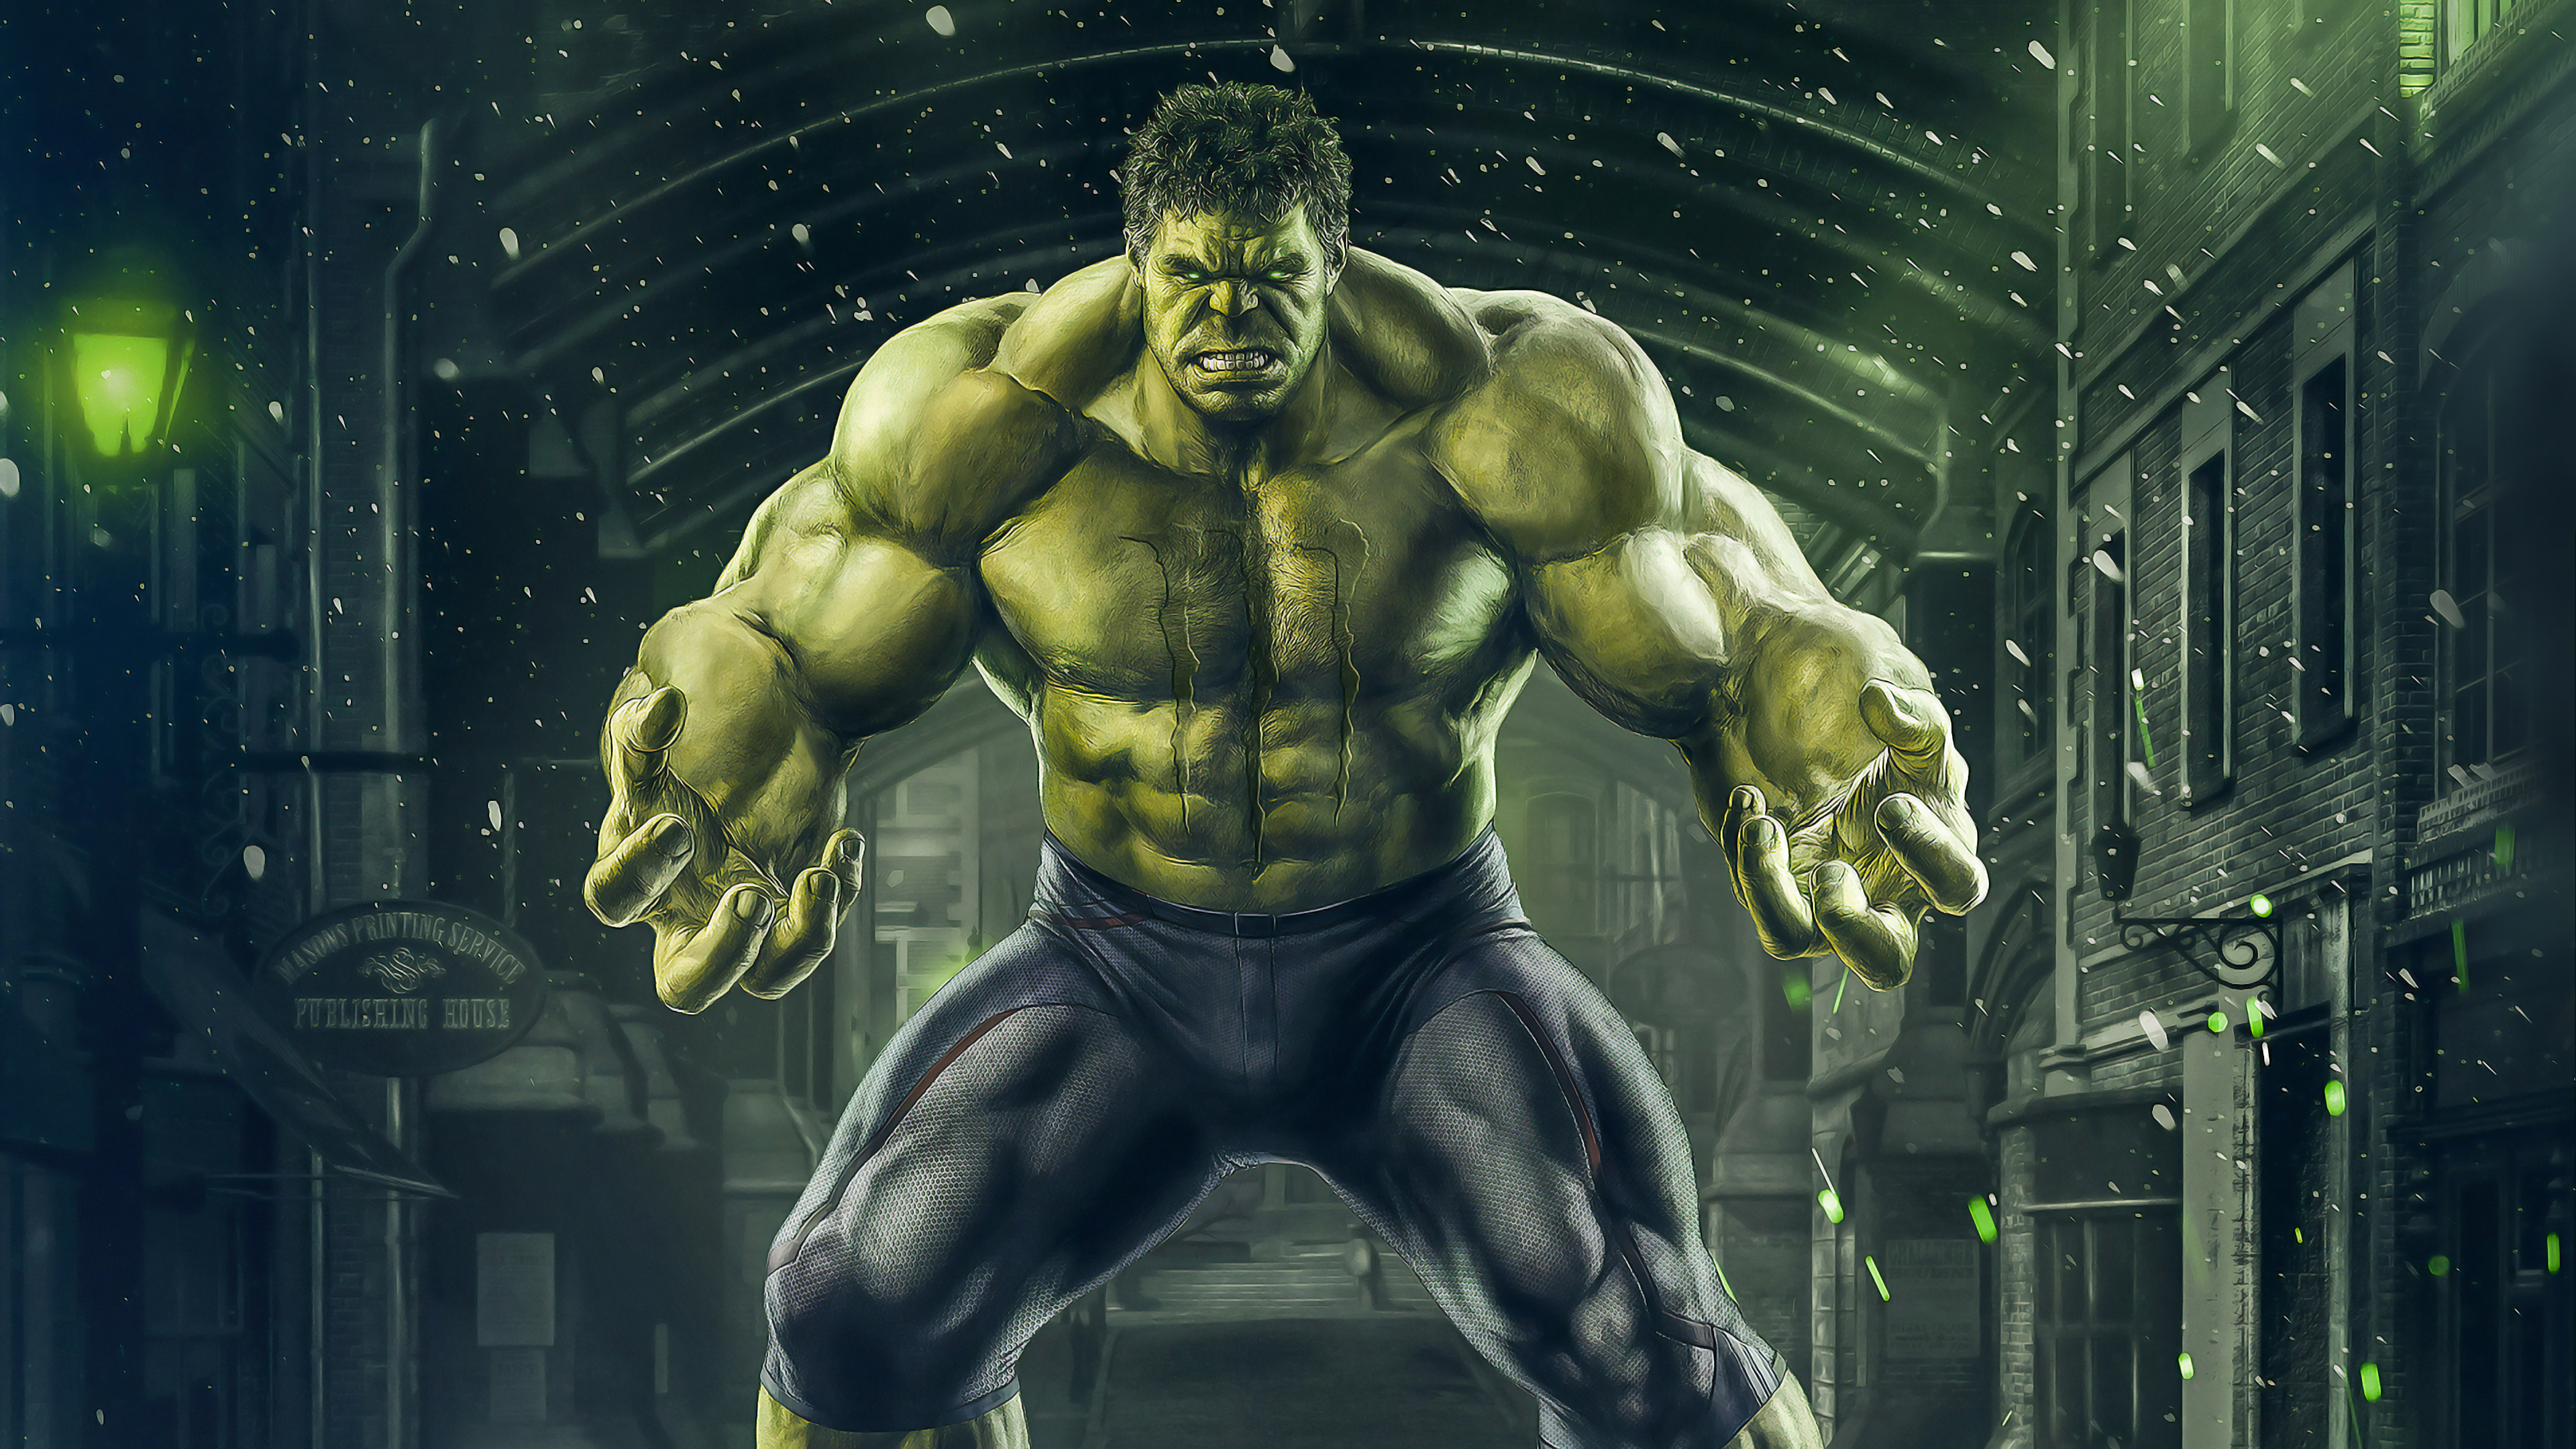 3840x2160 hulk the beast 4k 4k hd 4k wallpapers images backgrounds photos and pictures - Background images 4k hd ...